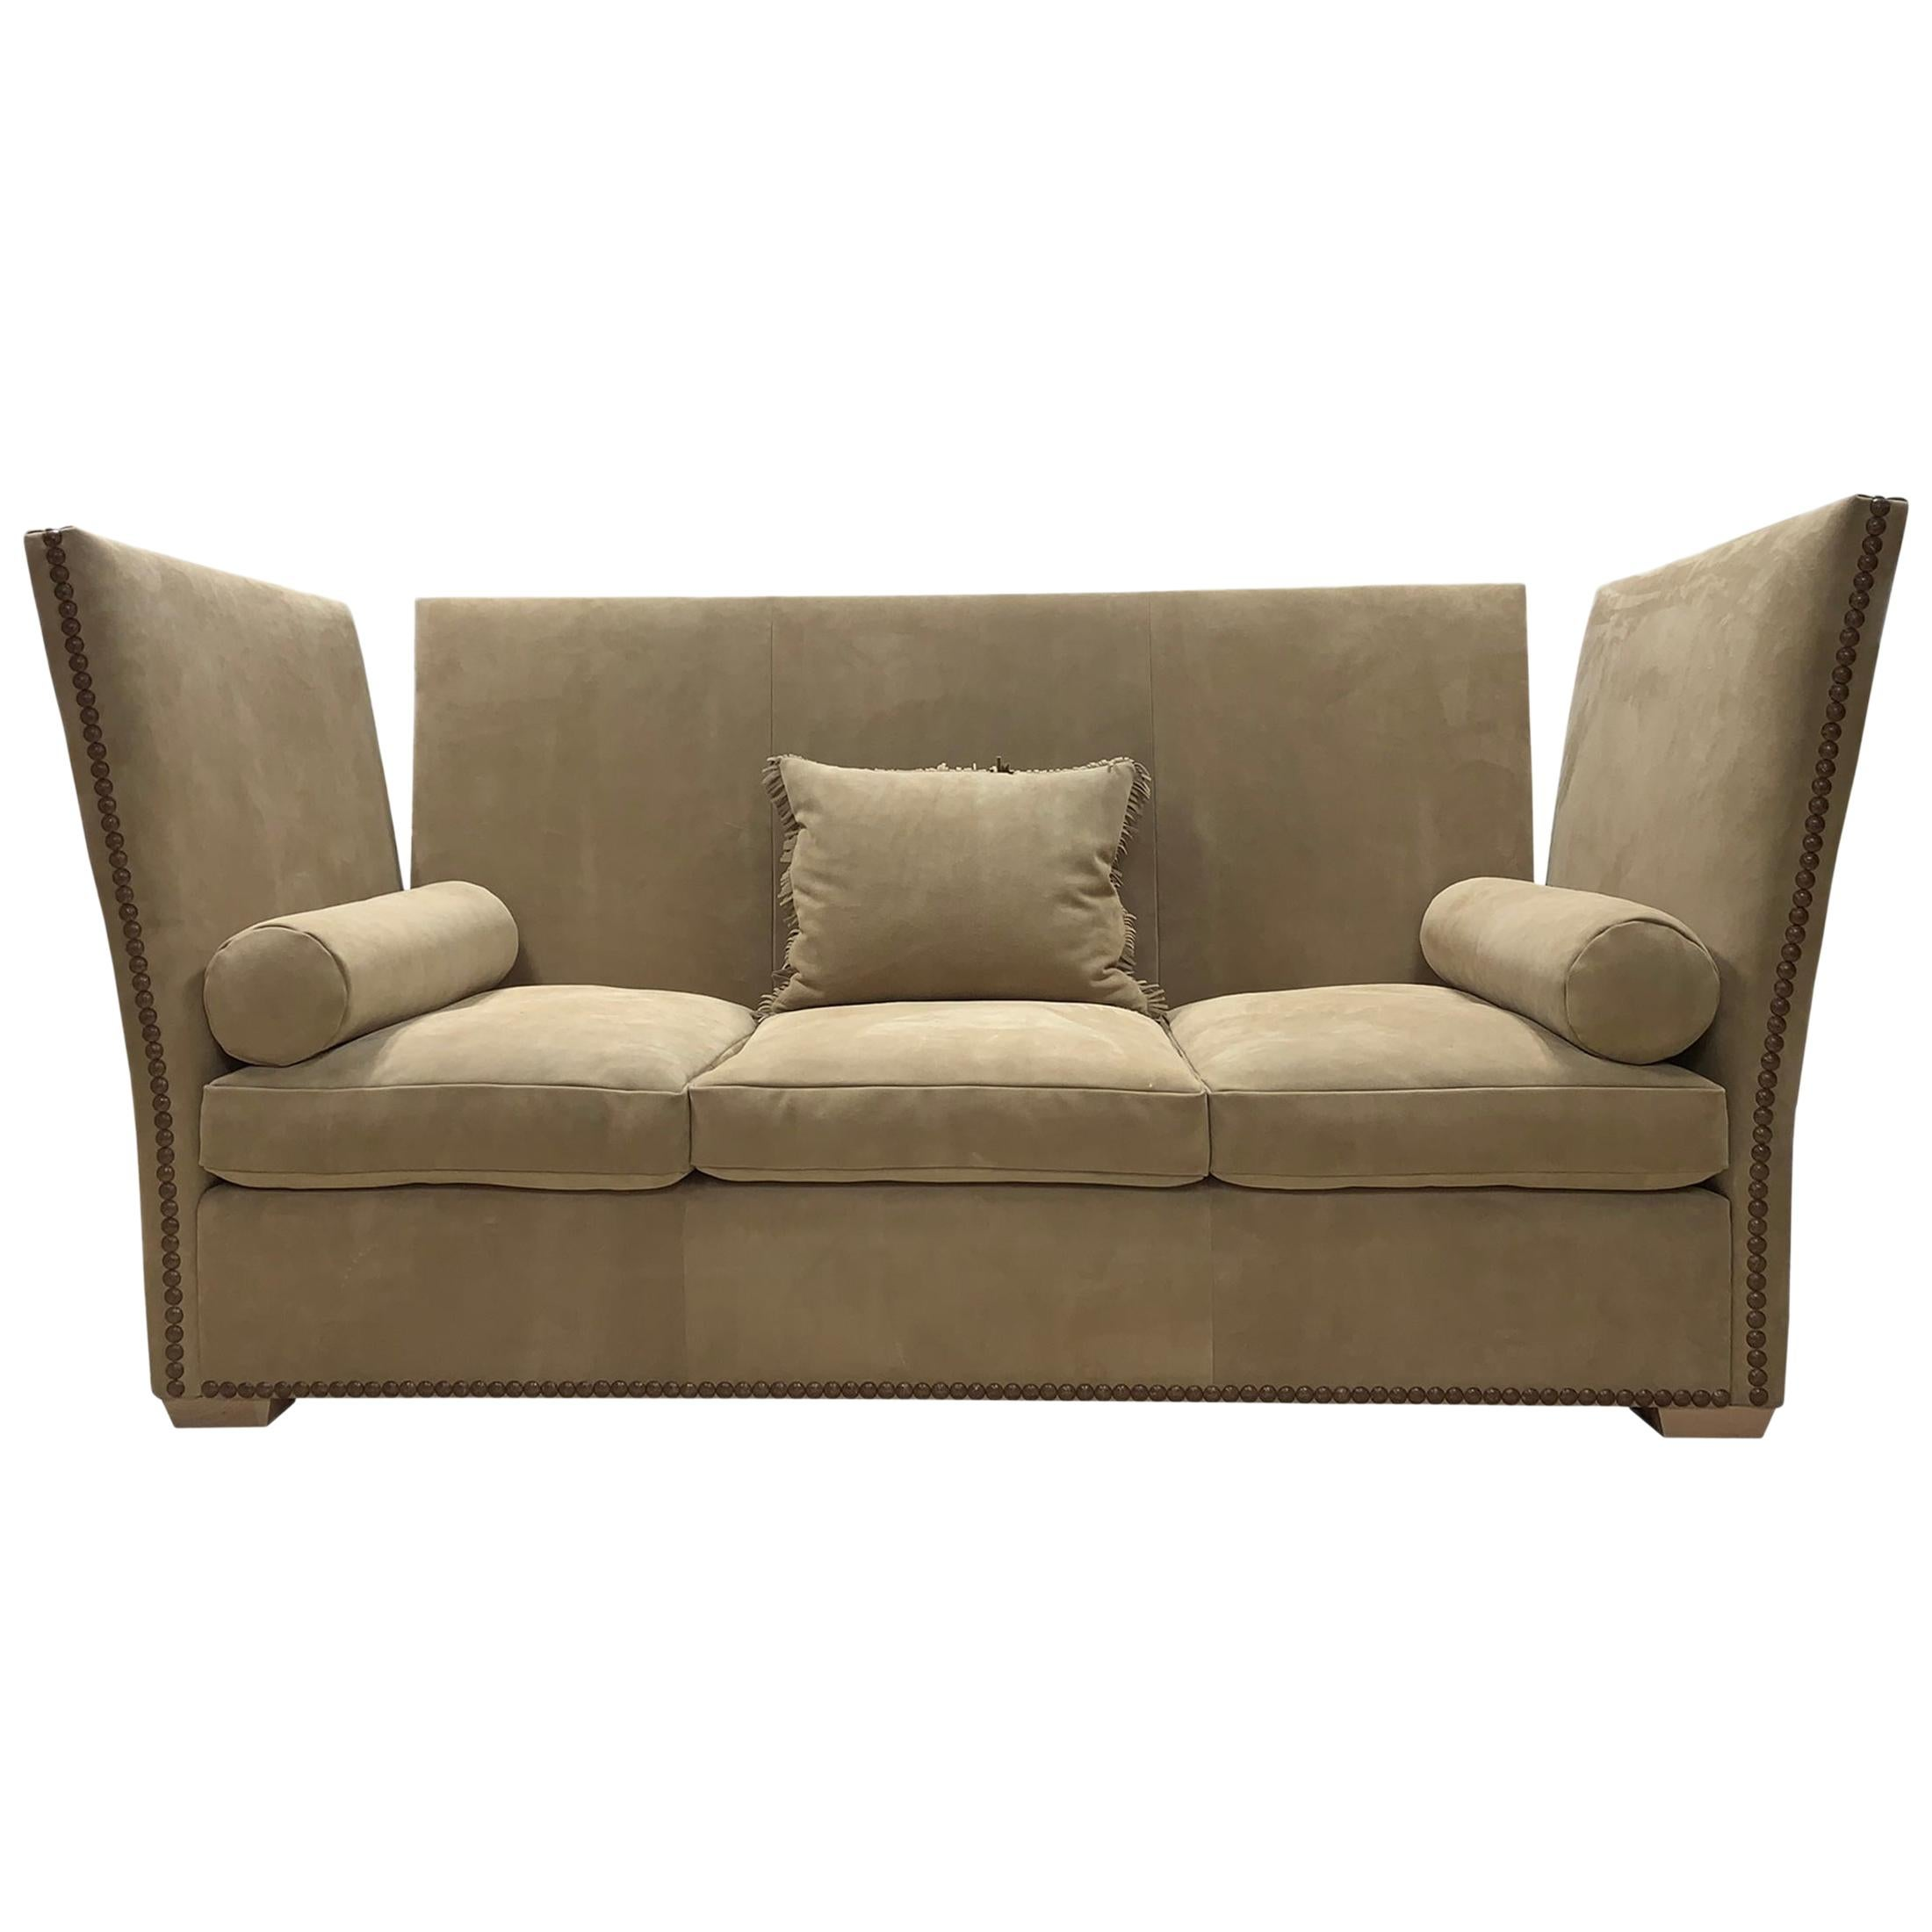 3-Seat Sofa in the Knole Style Upholstered in Brown Suede